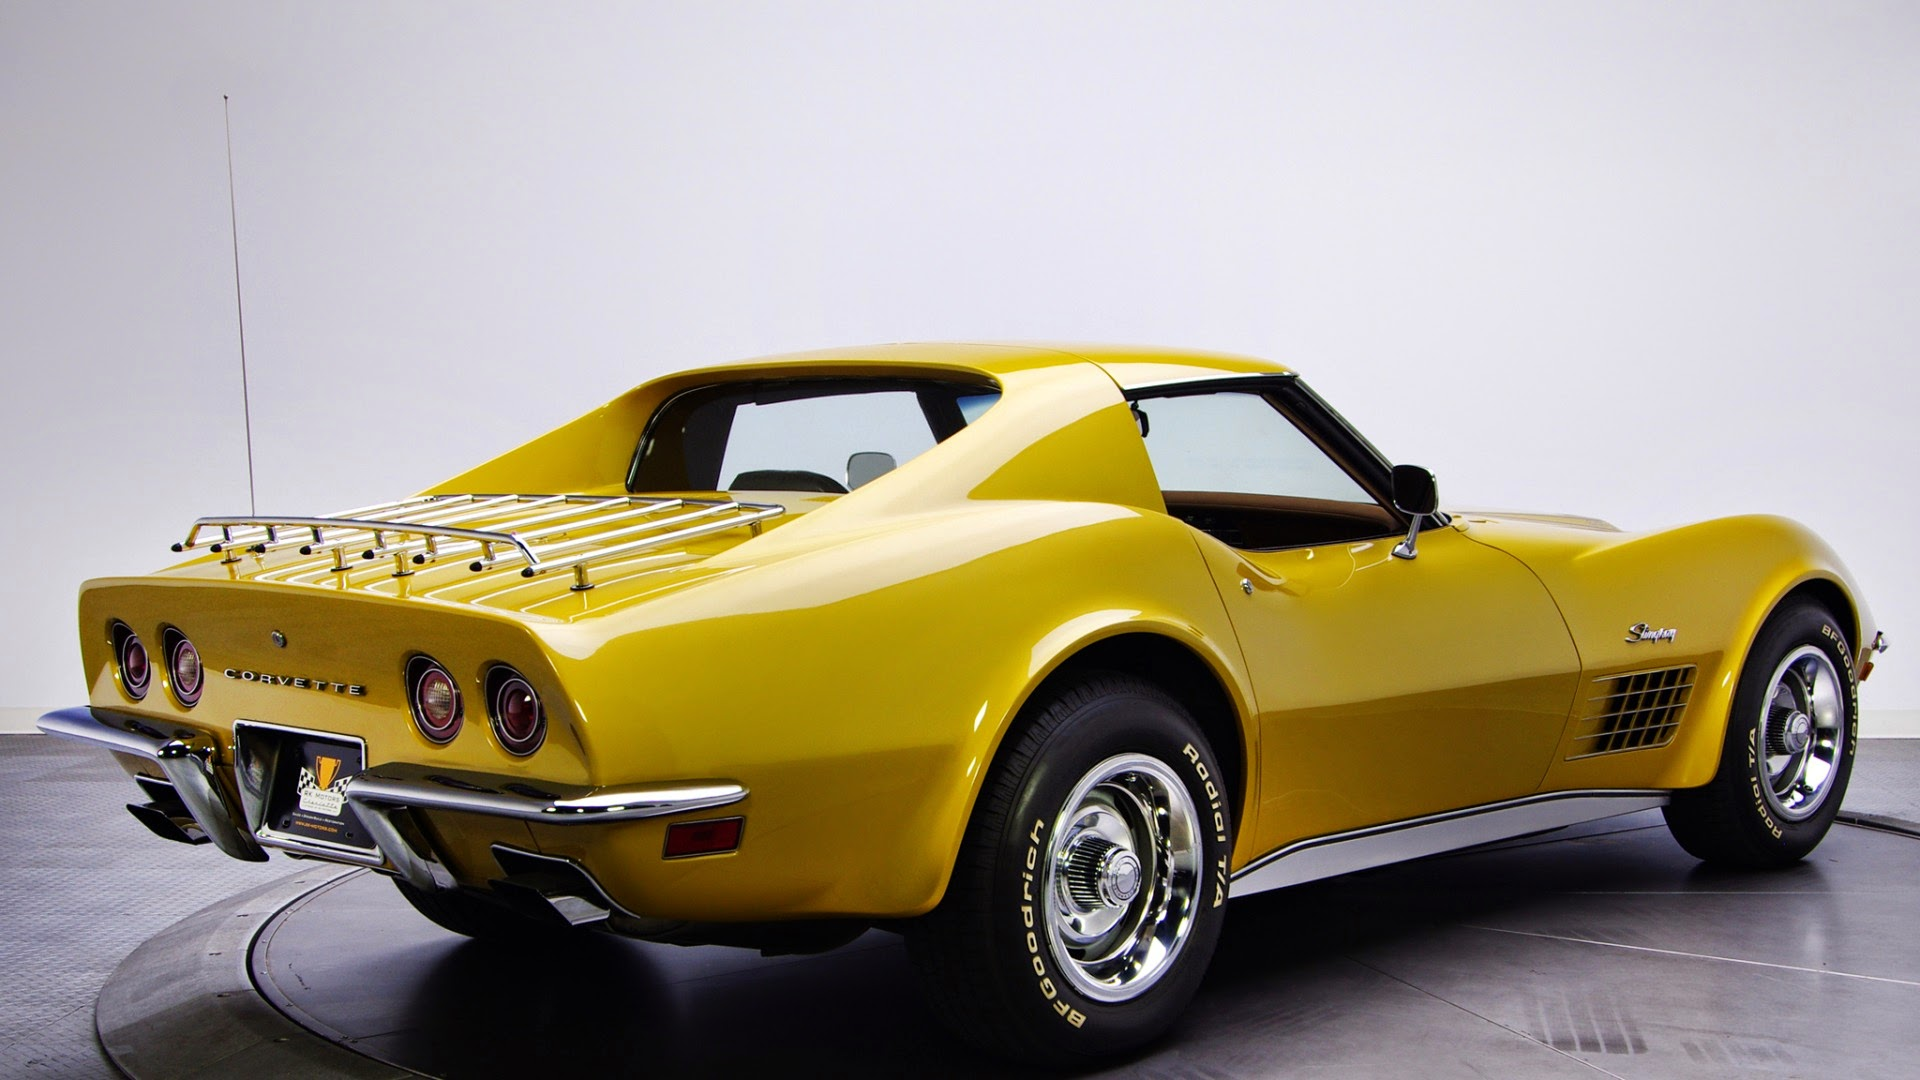 Chevrolet-Corvette-Stingray-C3-1970_carros-clasicos.jpg